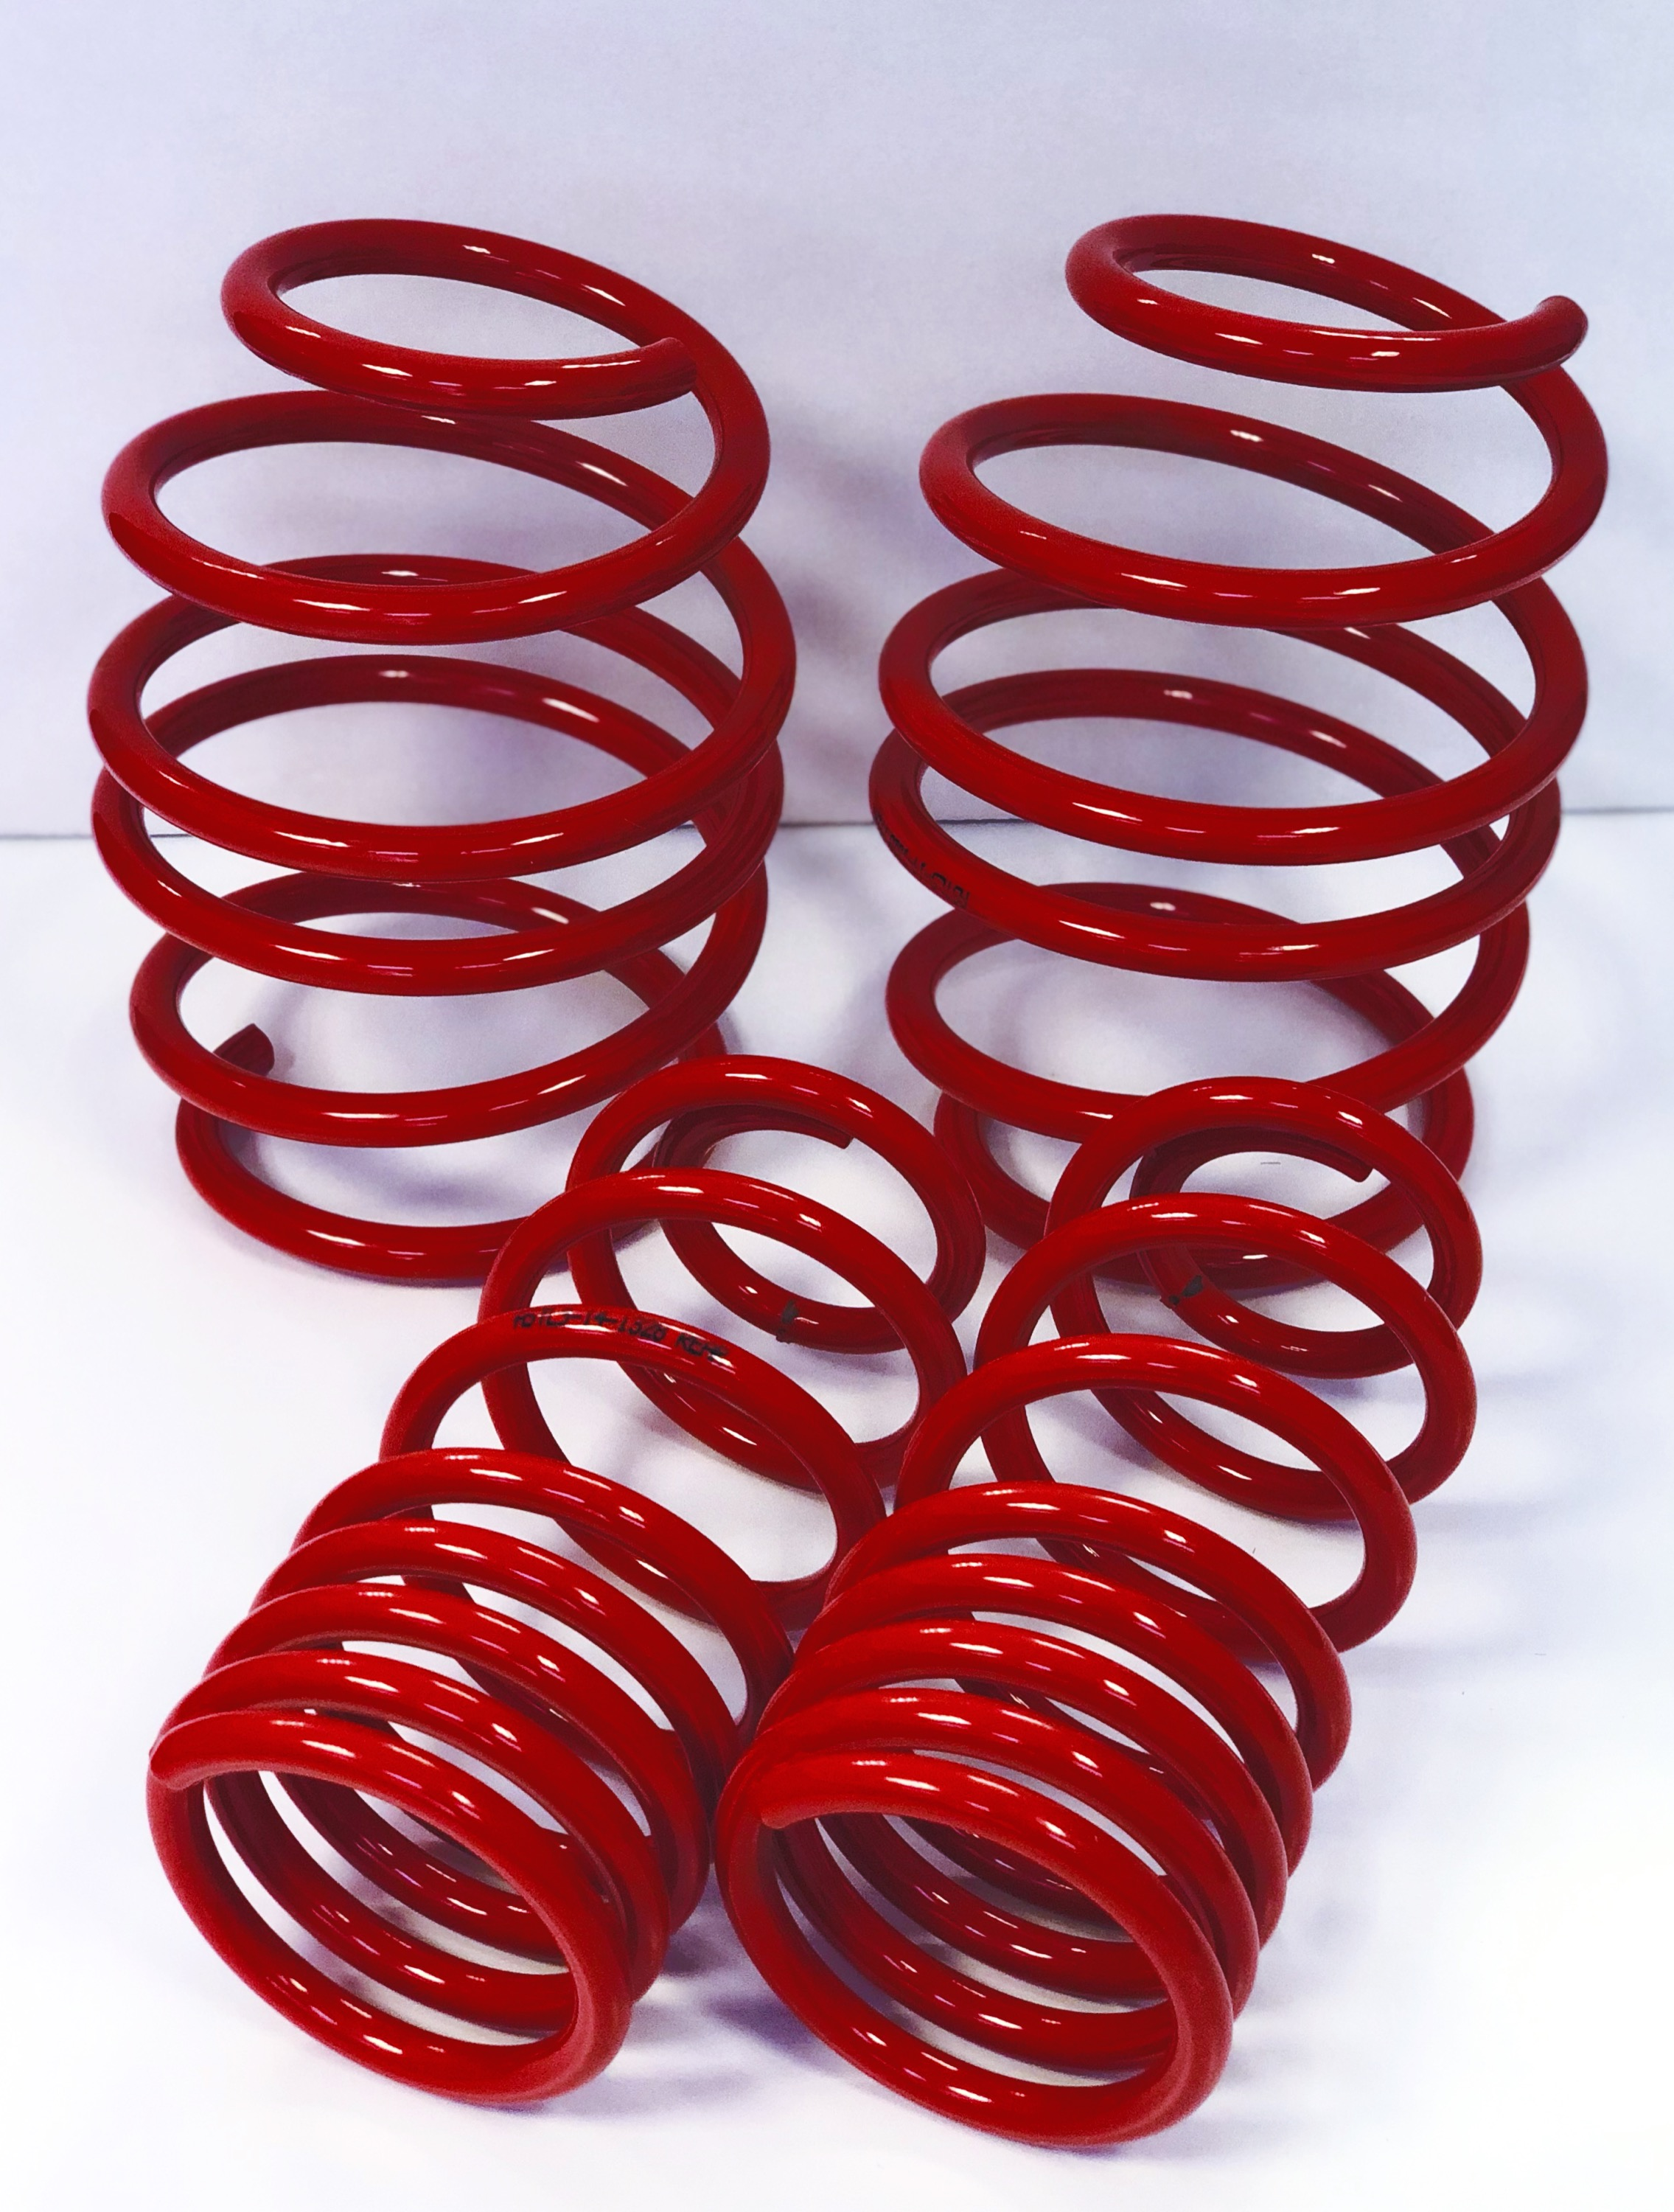 Volkswagen TIGUAN AST Suspension Lowering Springs 40MM